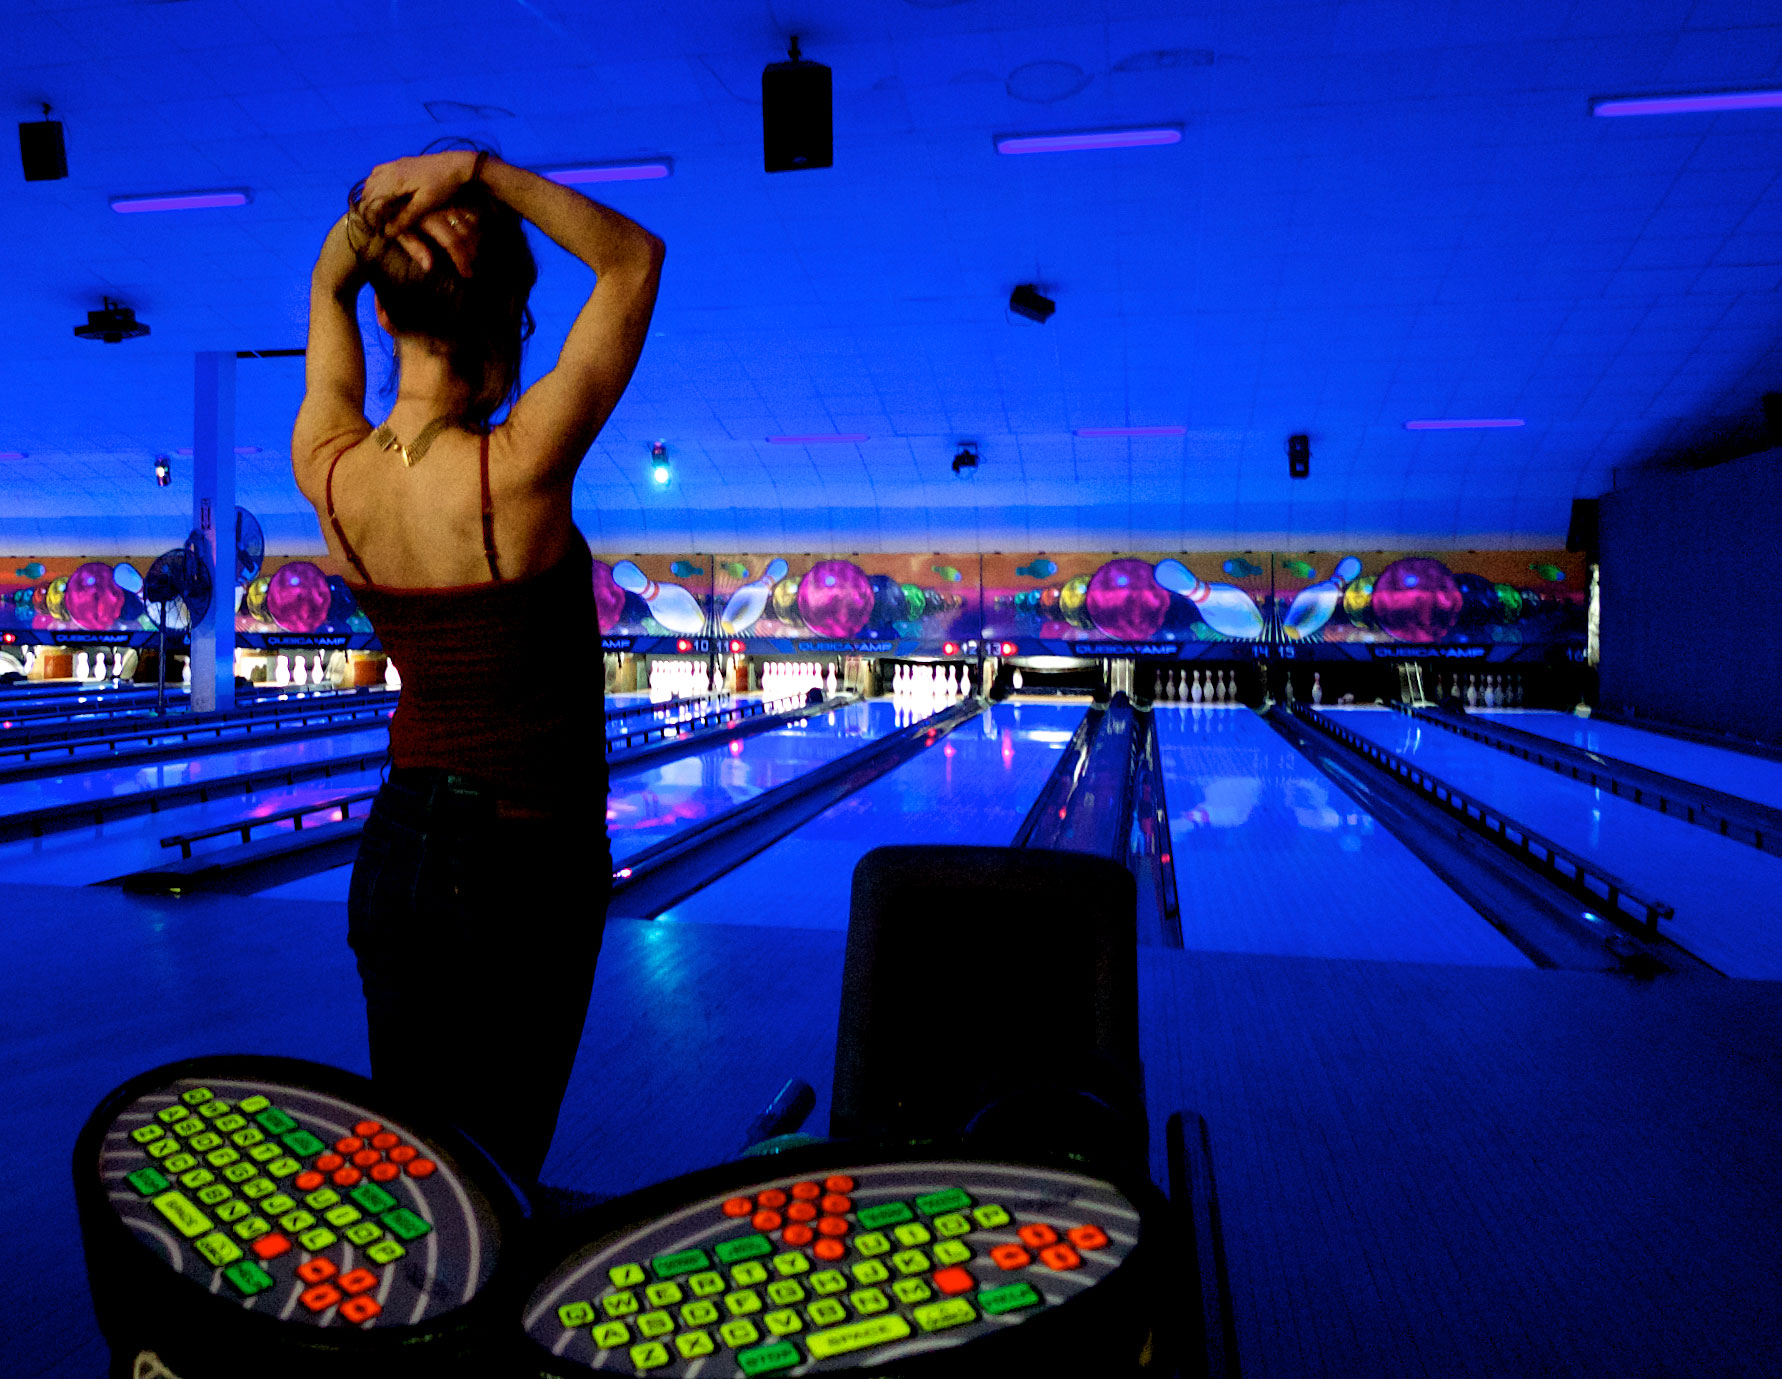 Rachel_Schulder_Bowling_in_Brooklyn_On_Her_Birthday.jpg